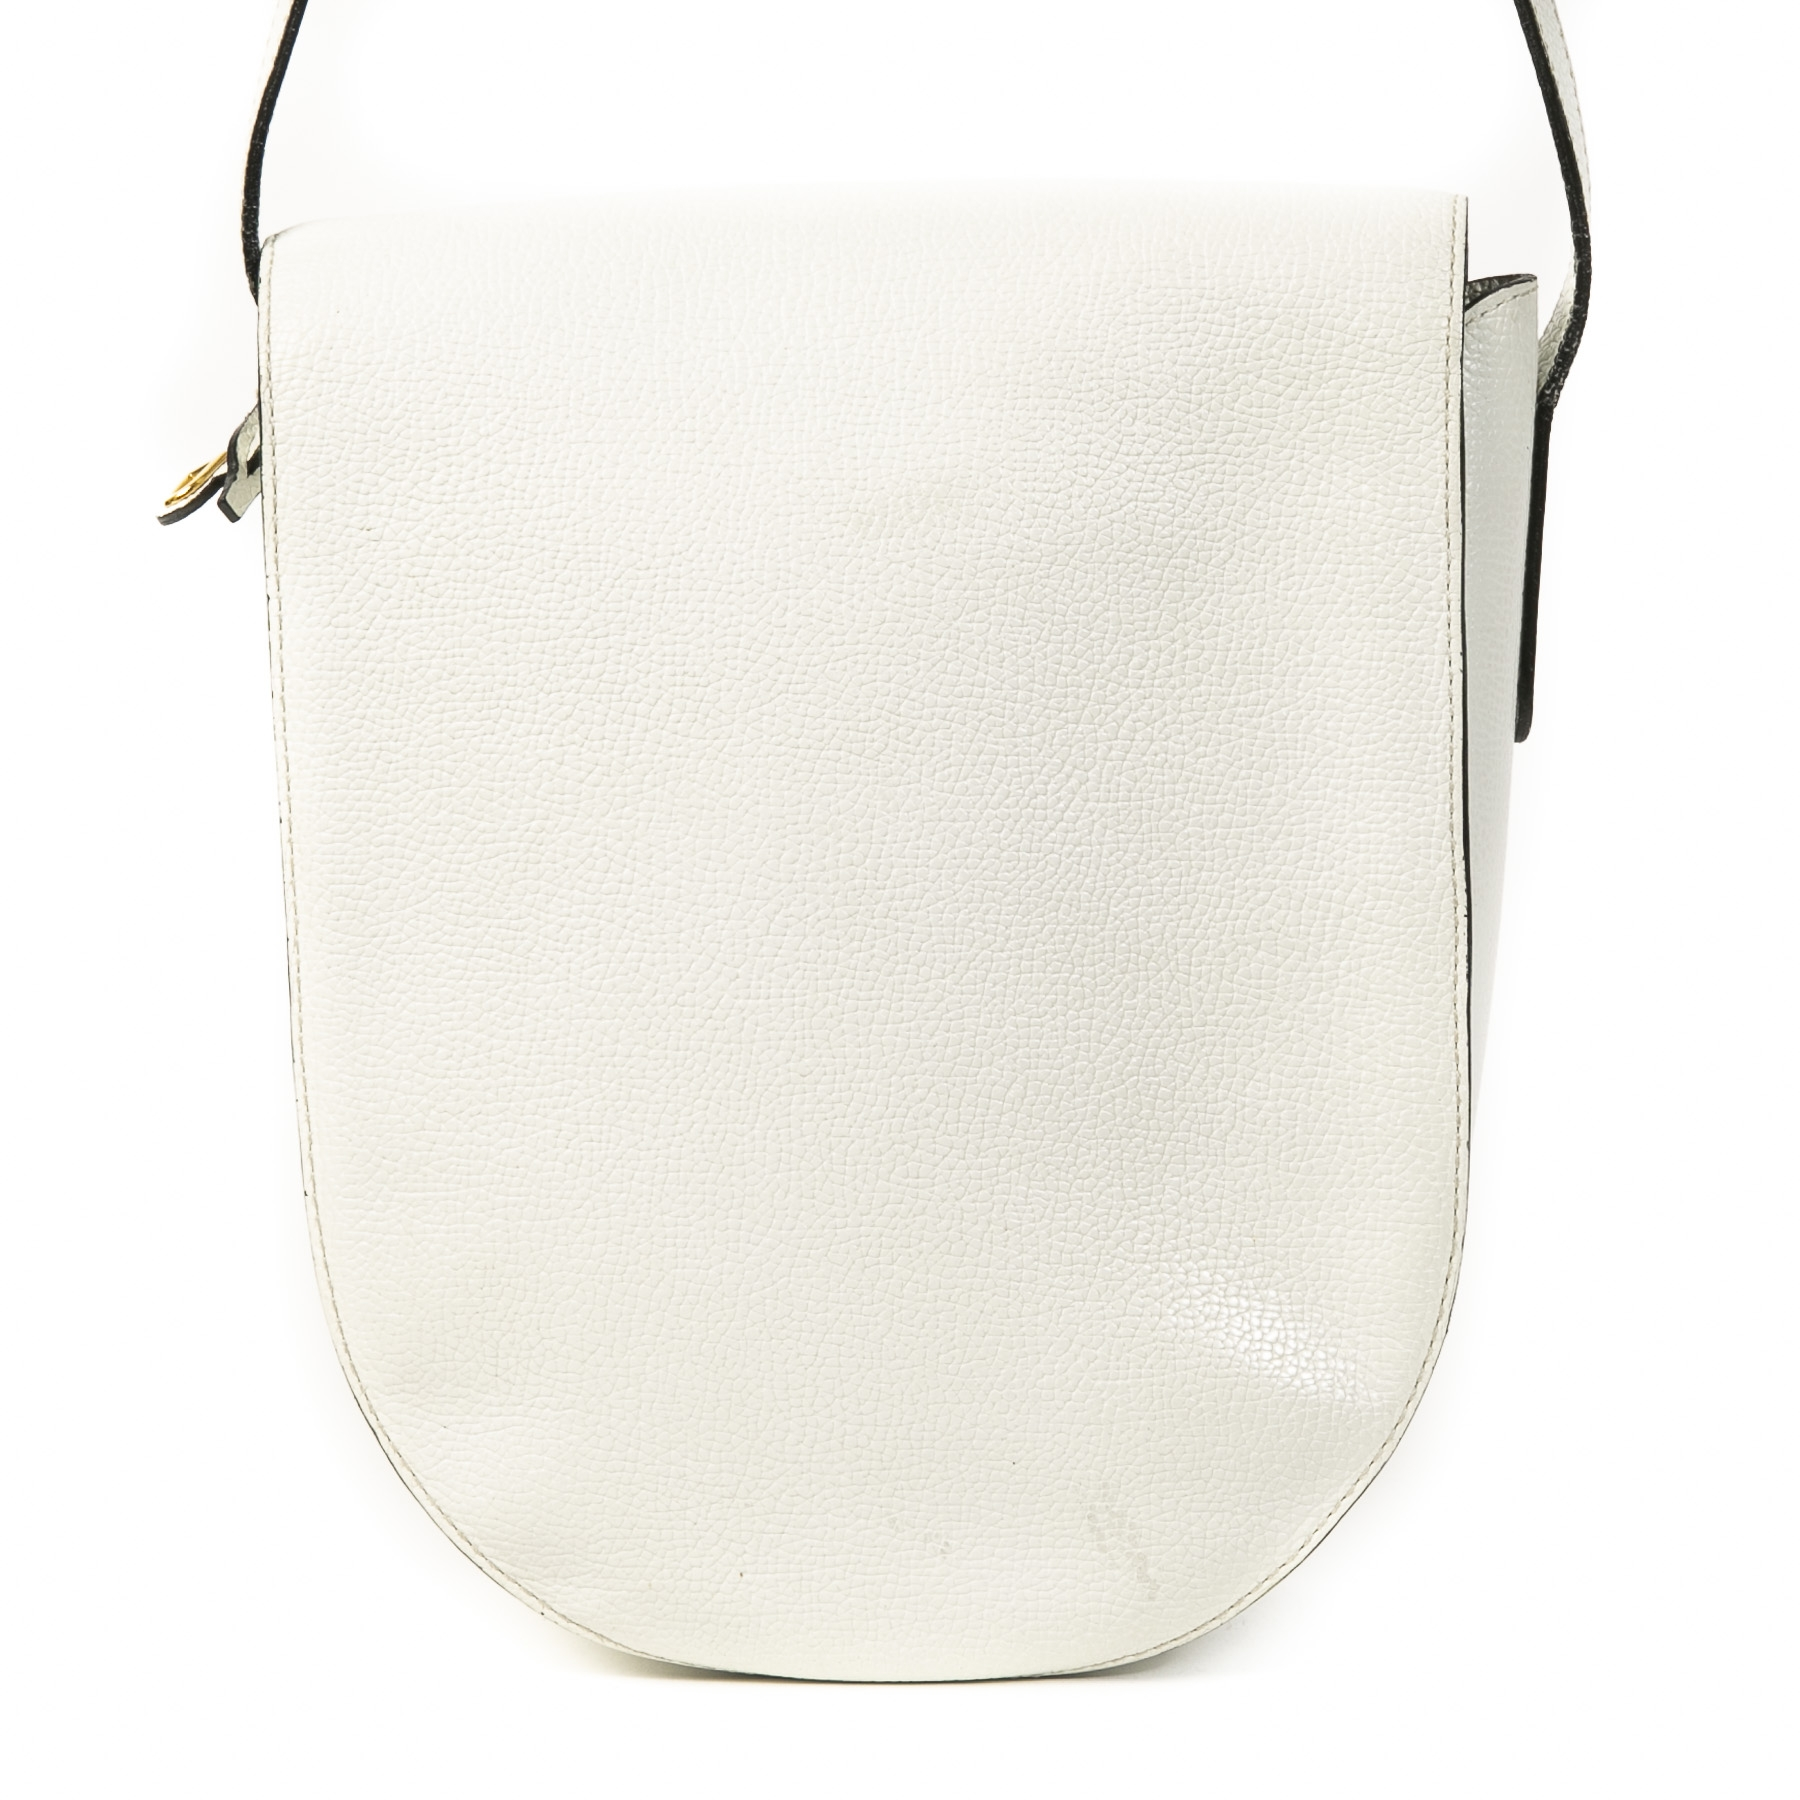 Delvaux White Crossbody Bag